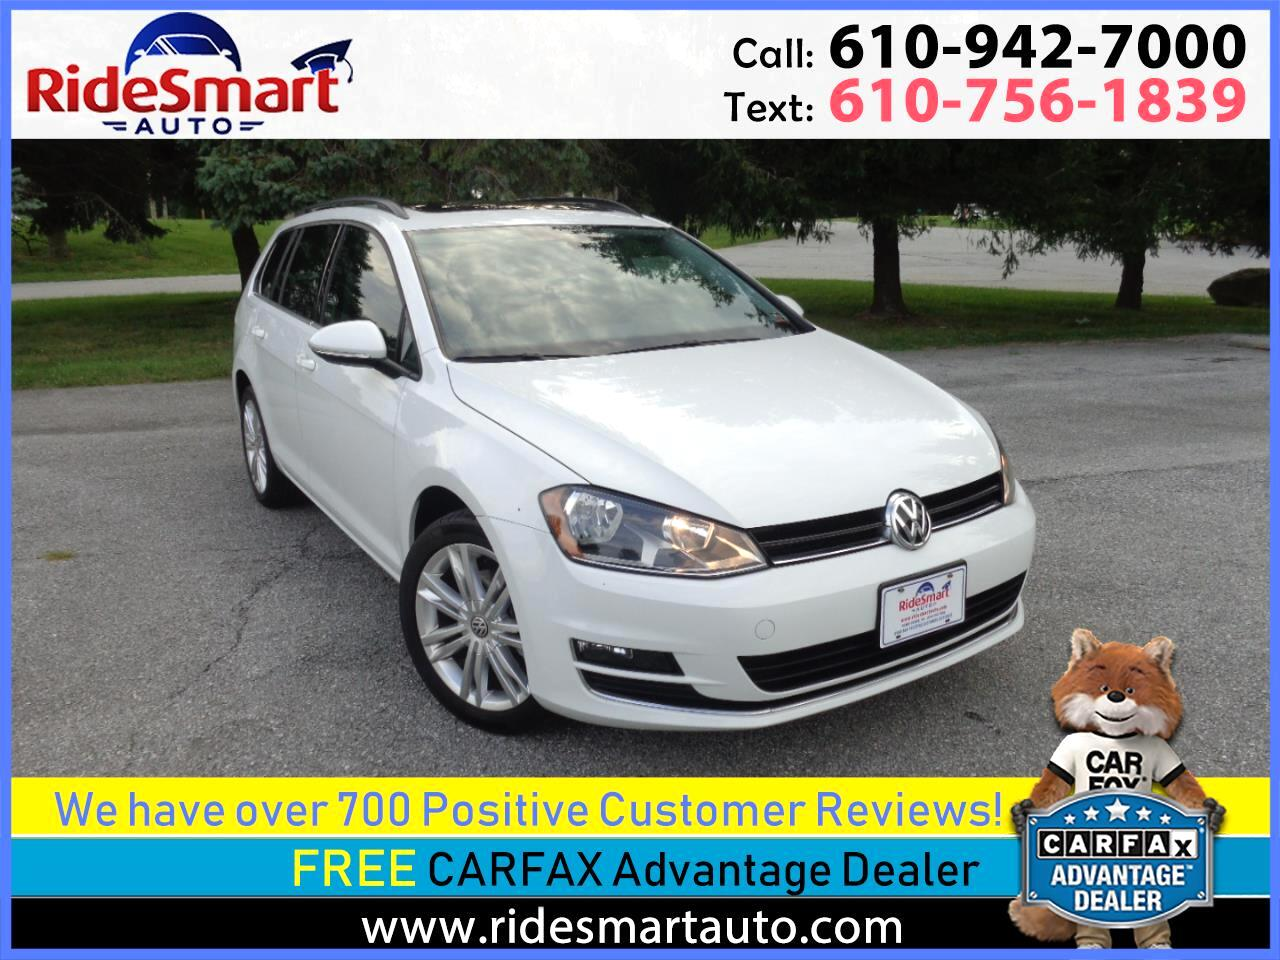 2015 Volkswagen Golf SportWagen TDi SE Panoramic Sunroof-Rear Camera